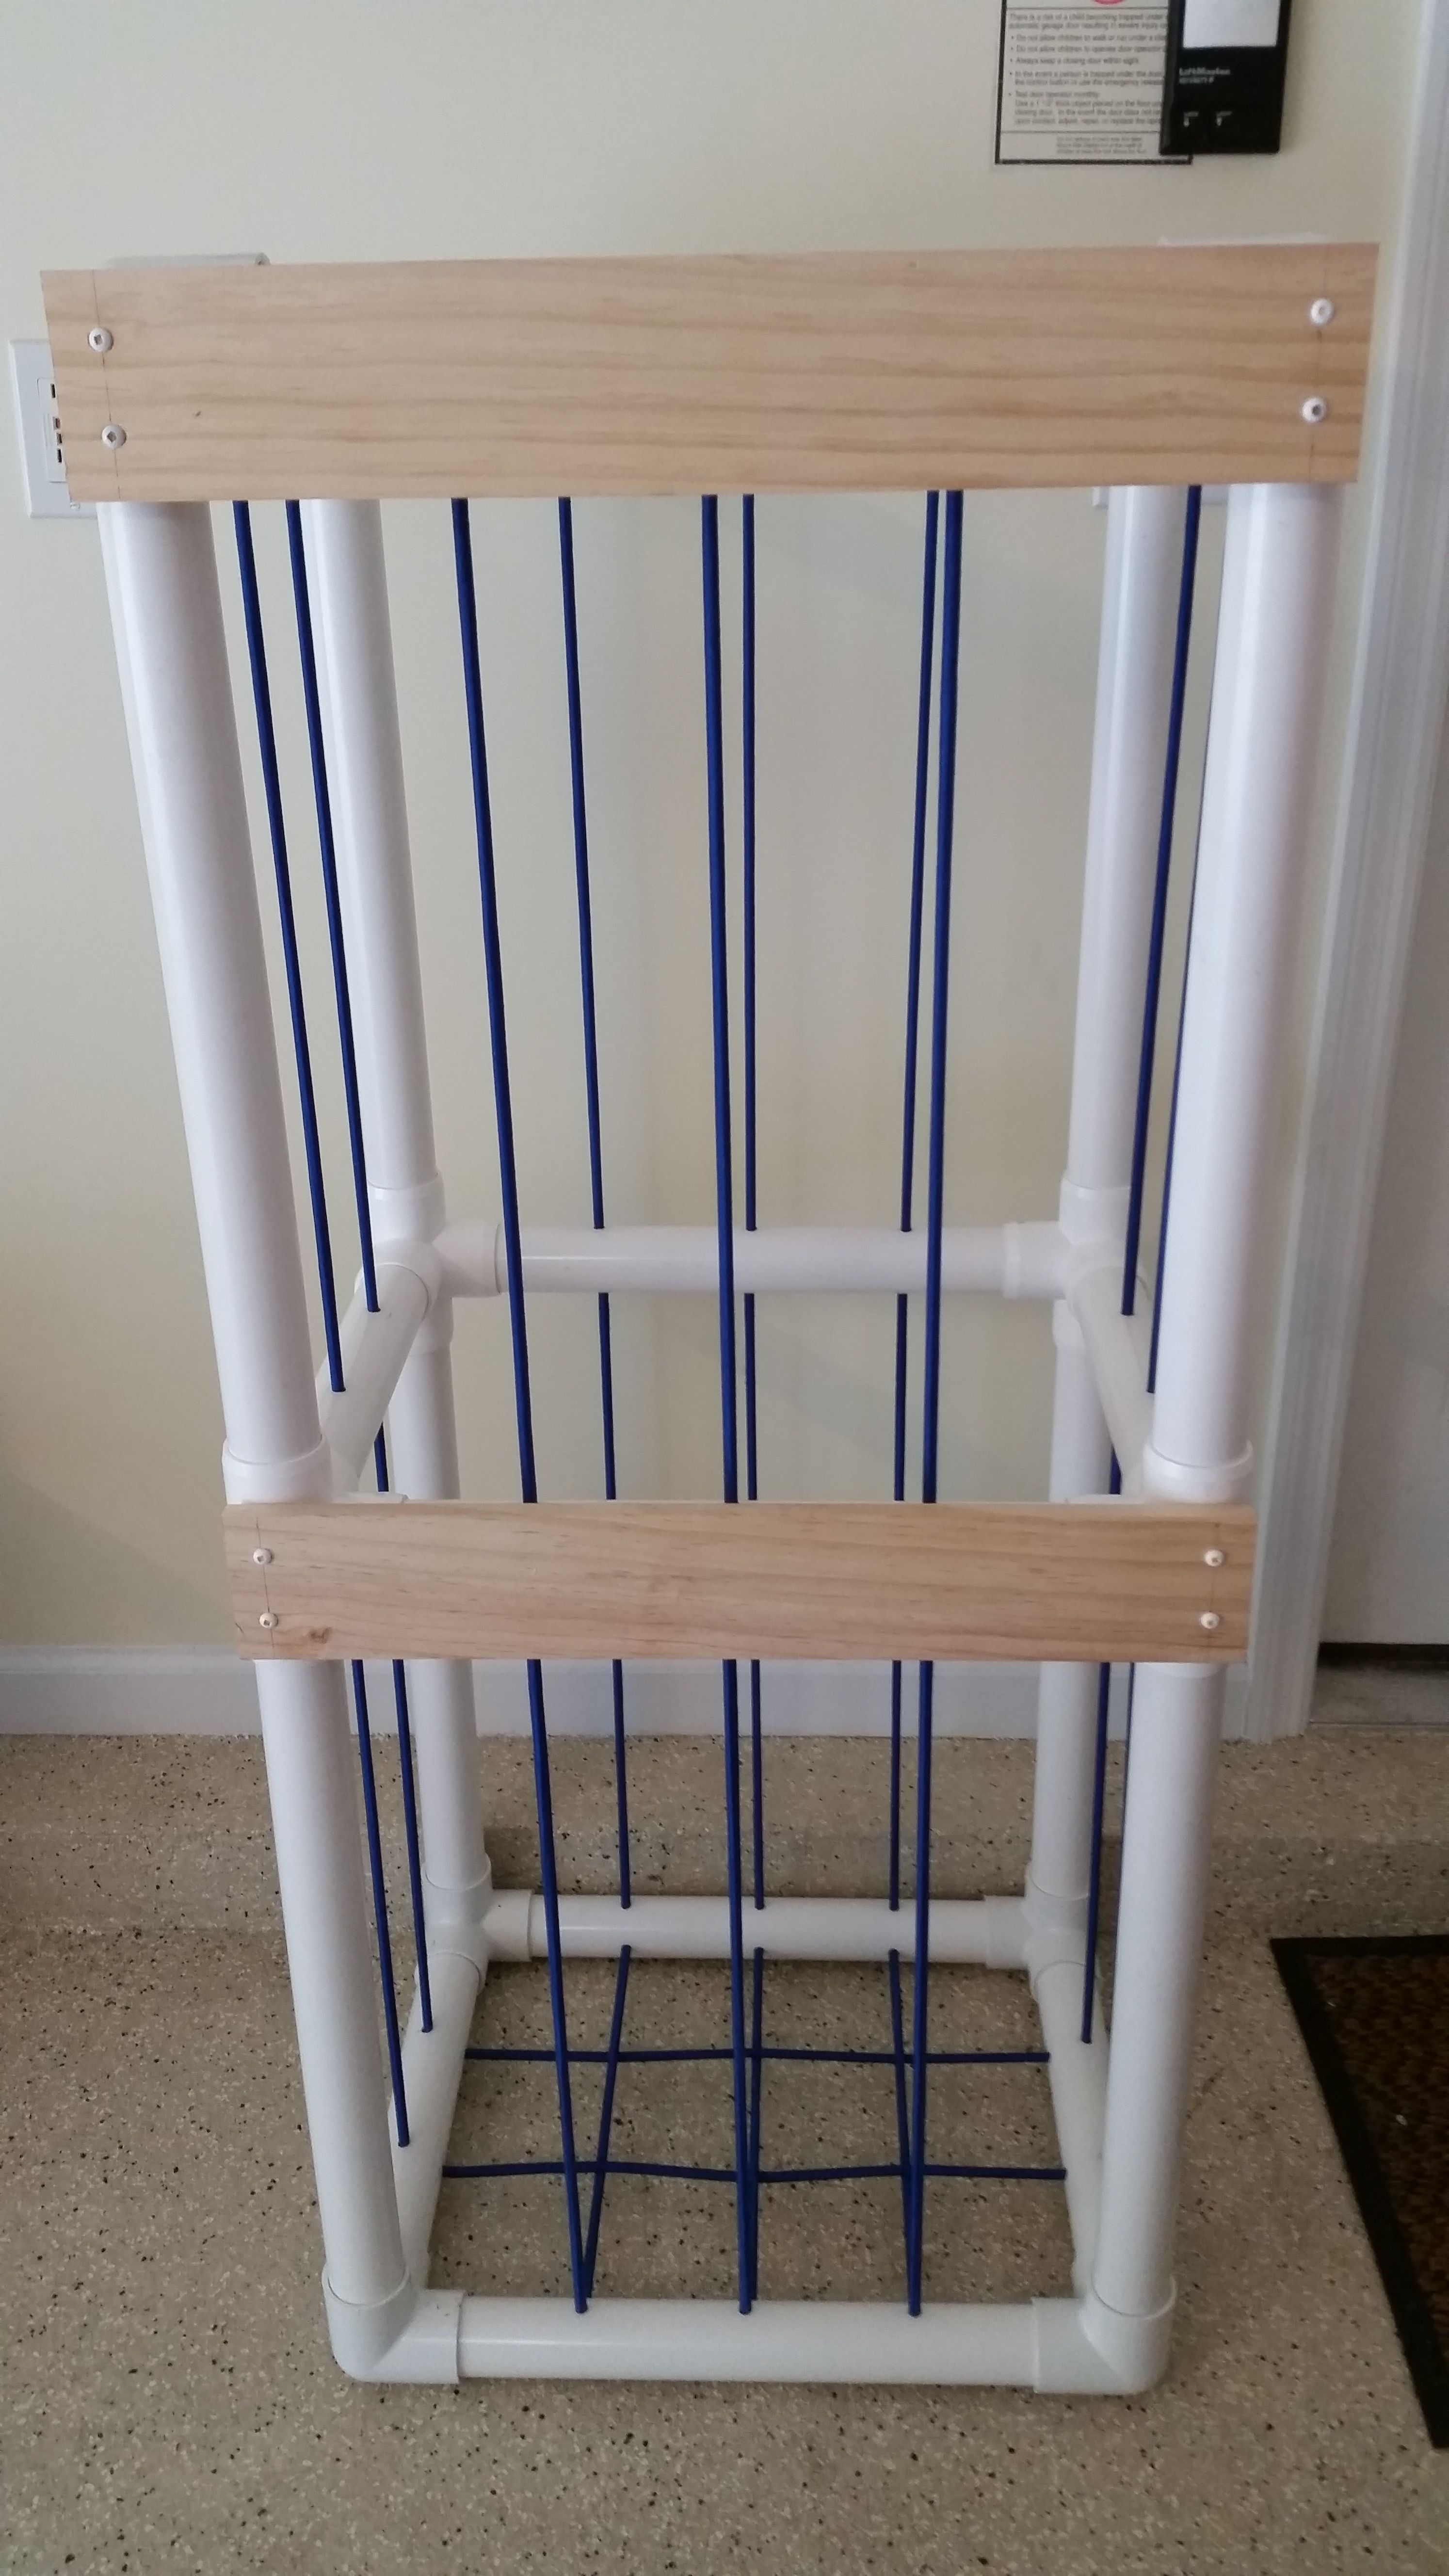 bungee cord chair diy walmart glider stuffed animal cage made from pvc pipe and projects more